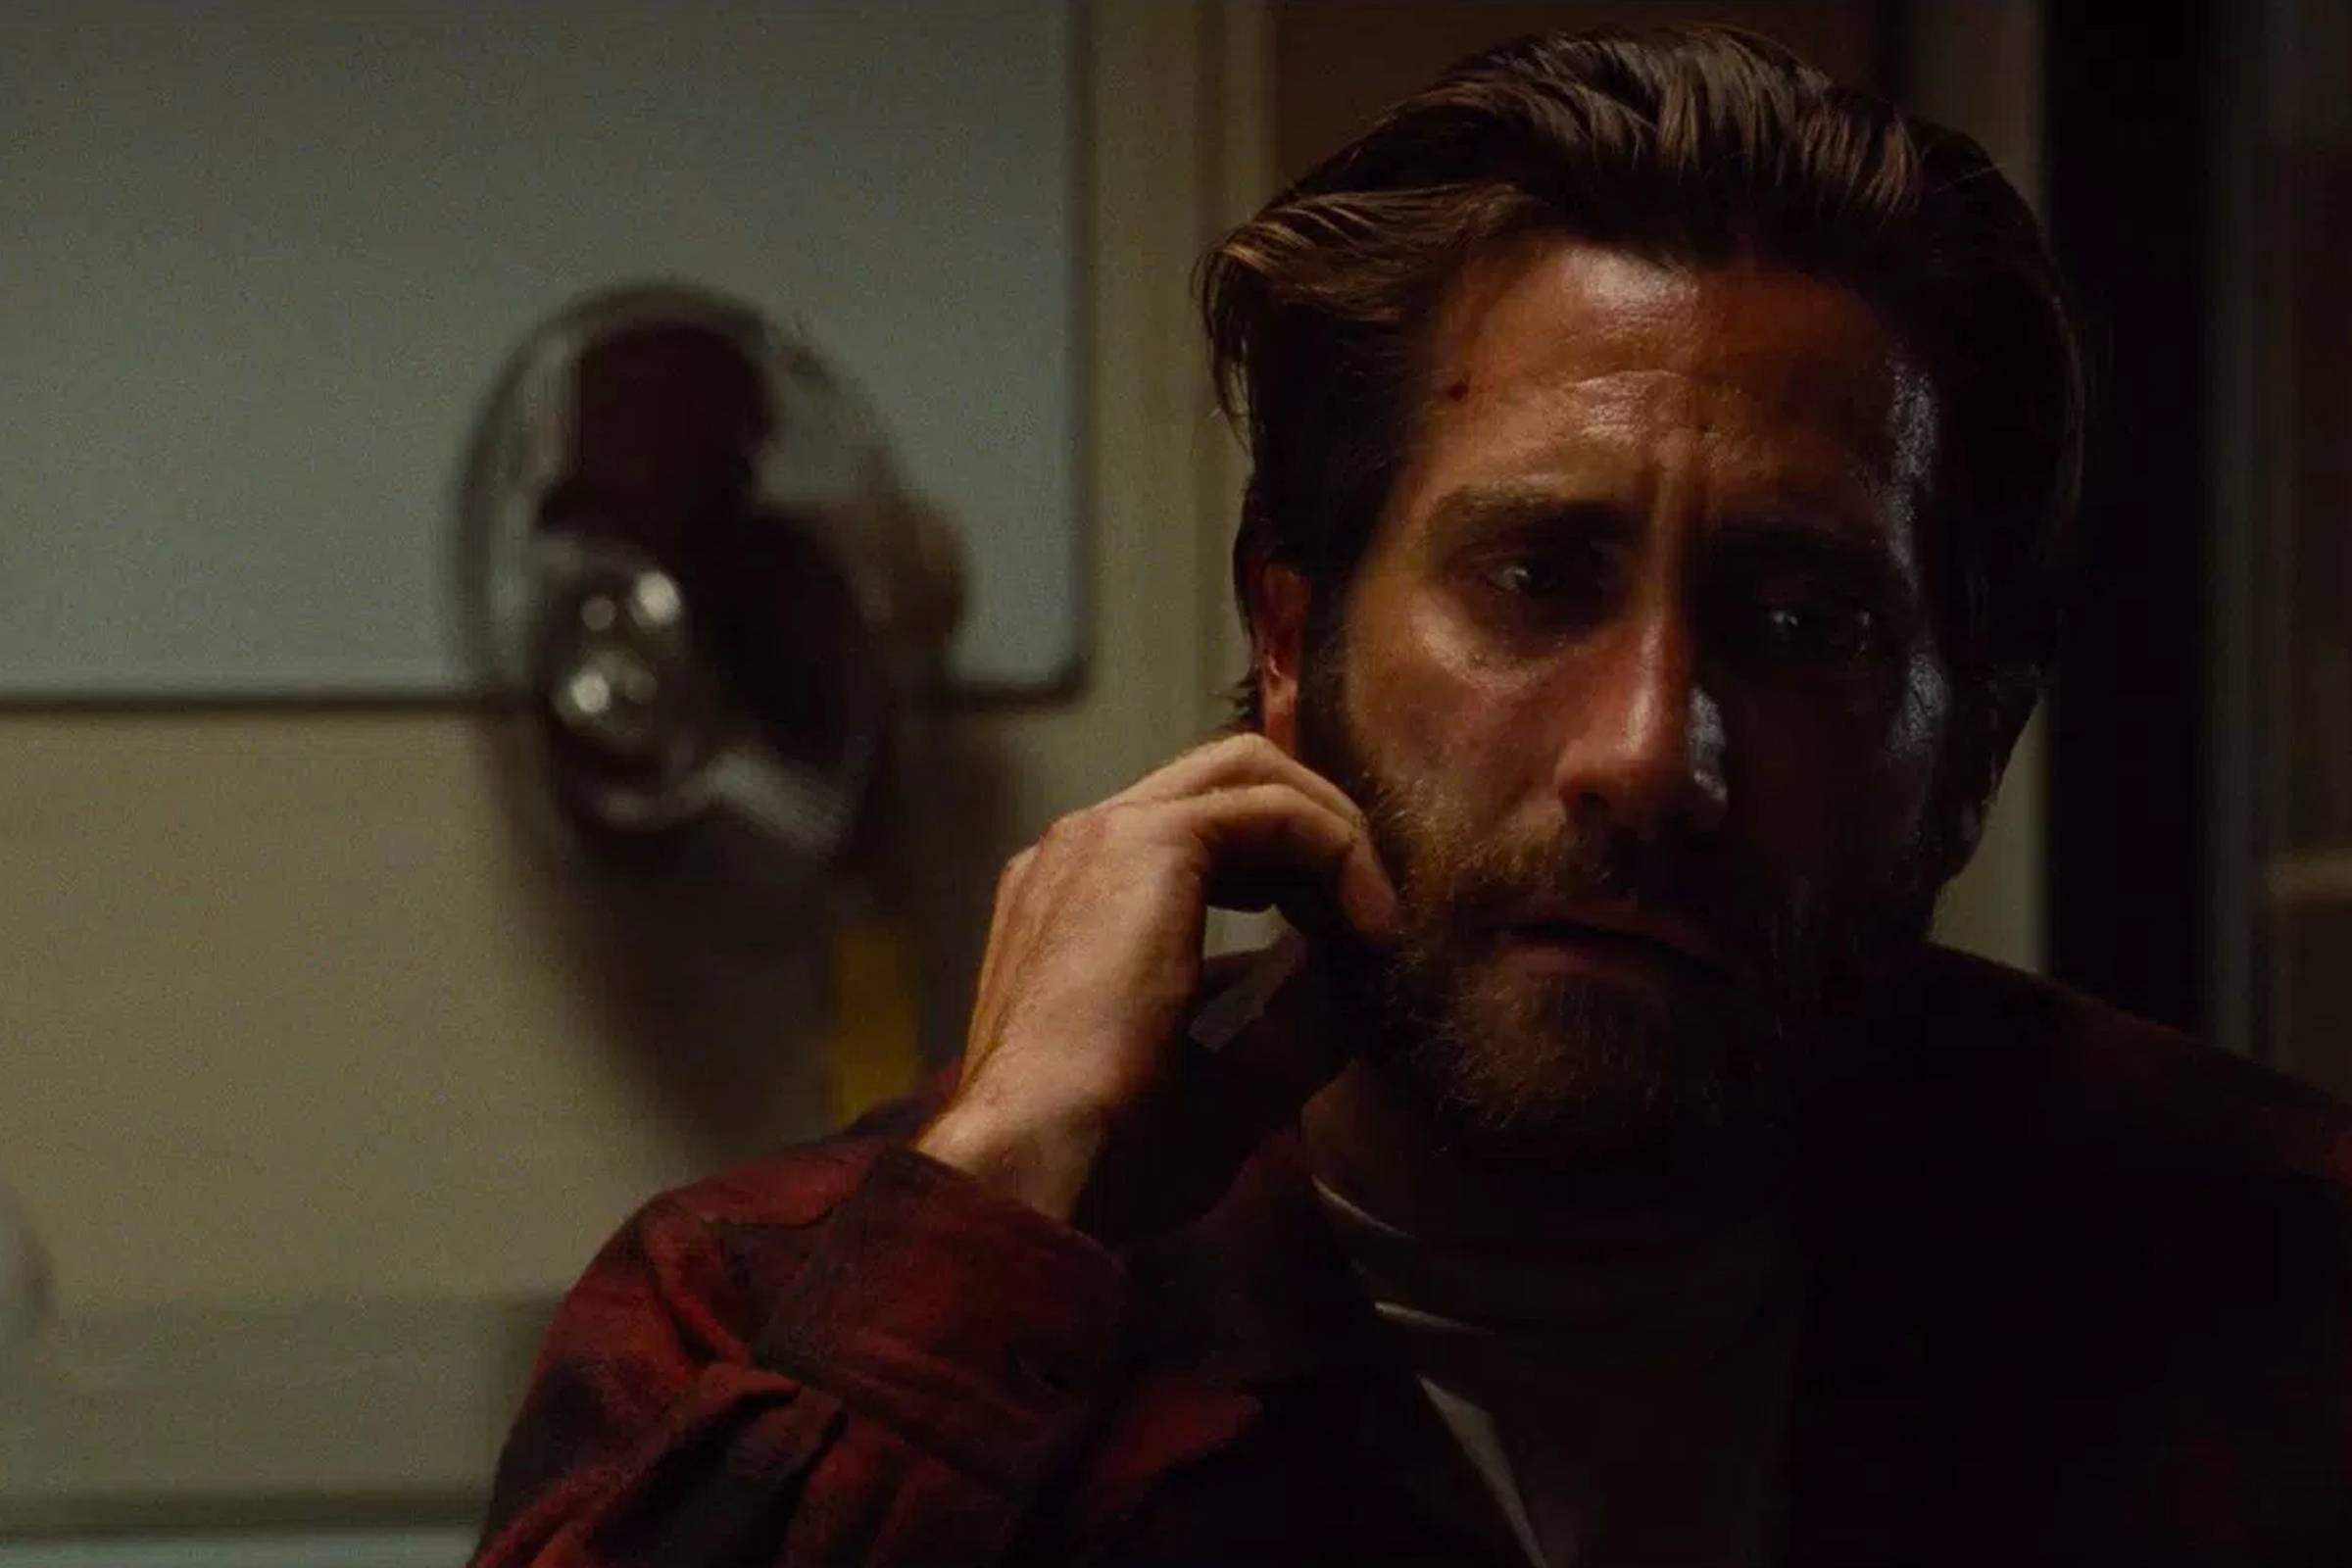 In His Second Film Nocturnal Animals  Ford Explores Similar Themes And Uses Similar Filmmaking Tactics As With A Single Man Nocturnal Animals